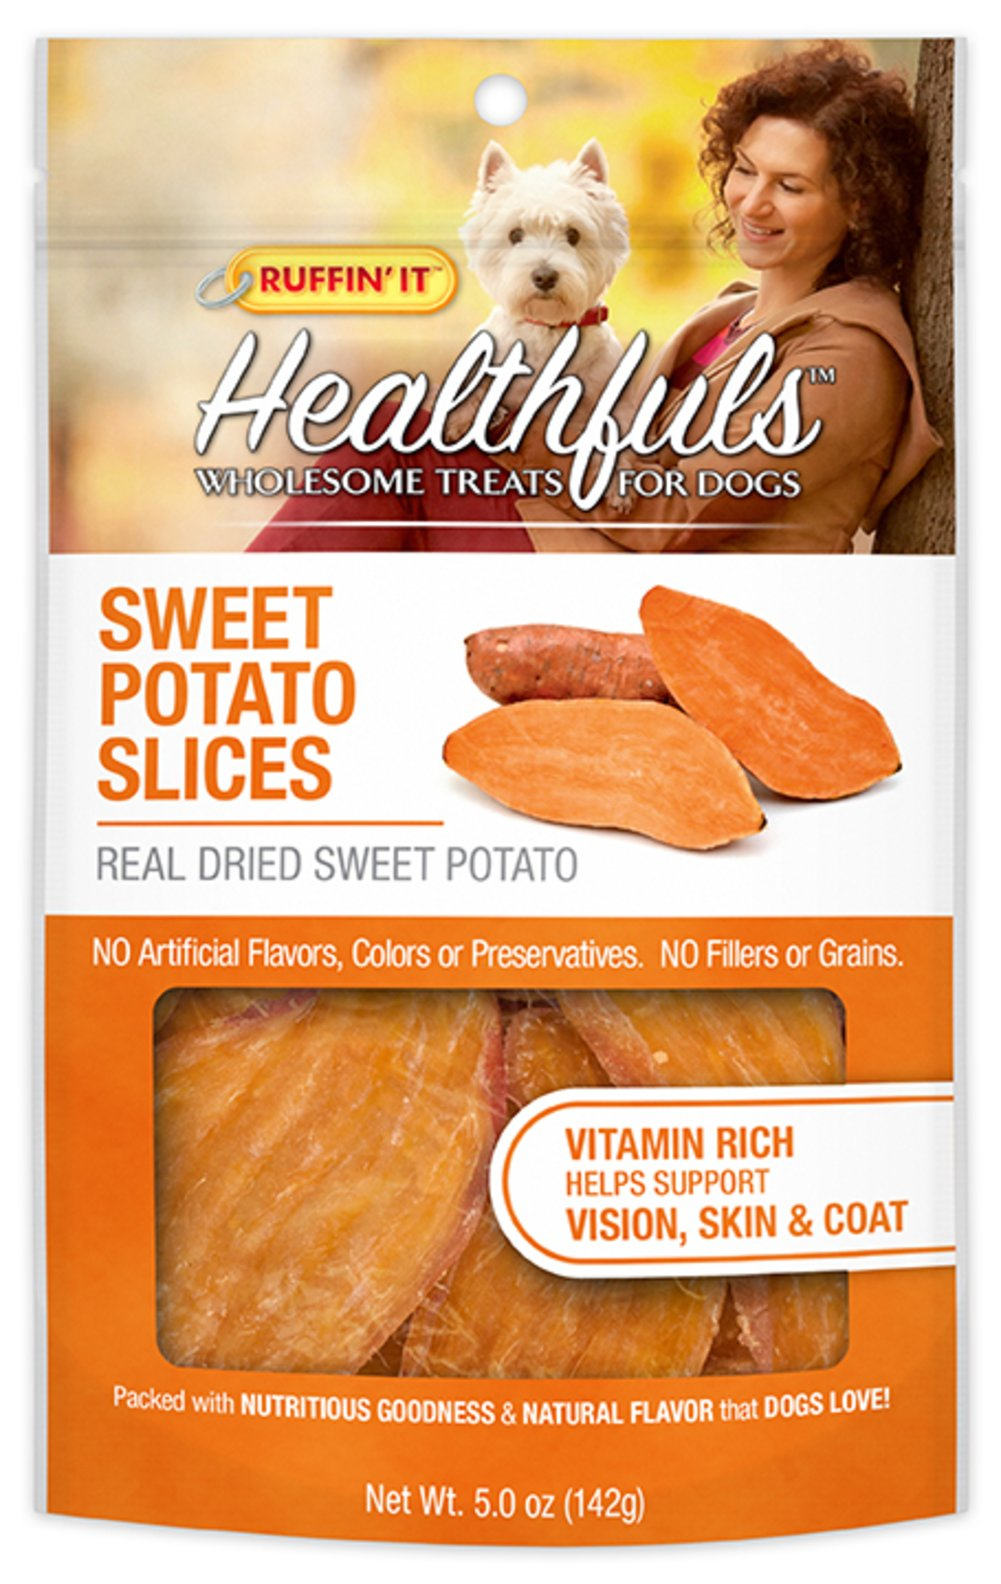 Healthfuls Wholesome Treats for Dogs Sweet Potato Slices  5 oz Bag  $4.99